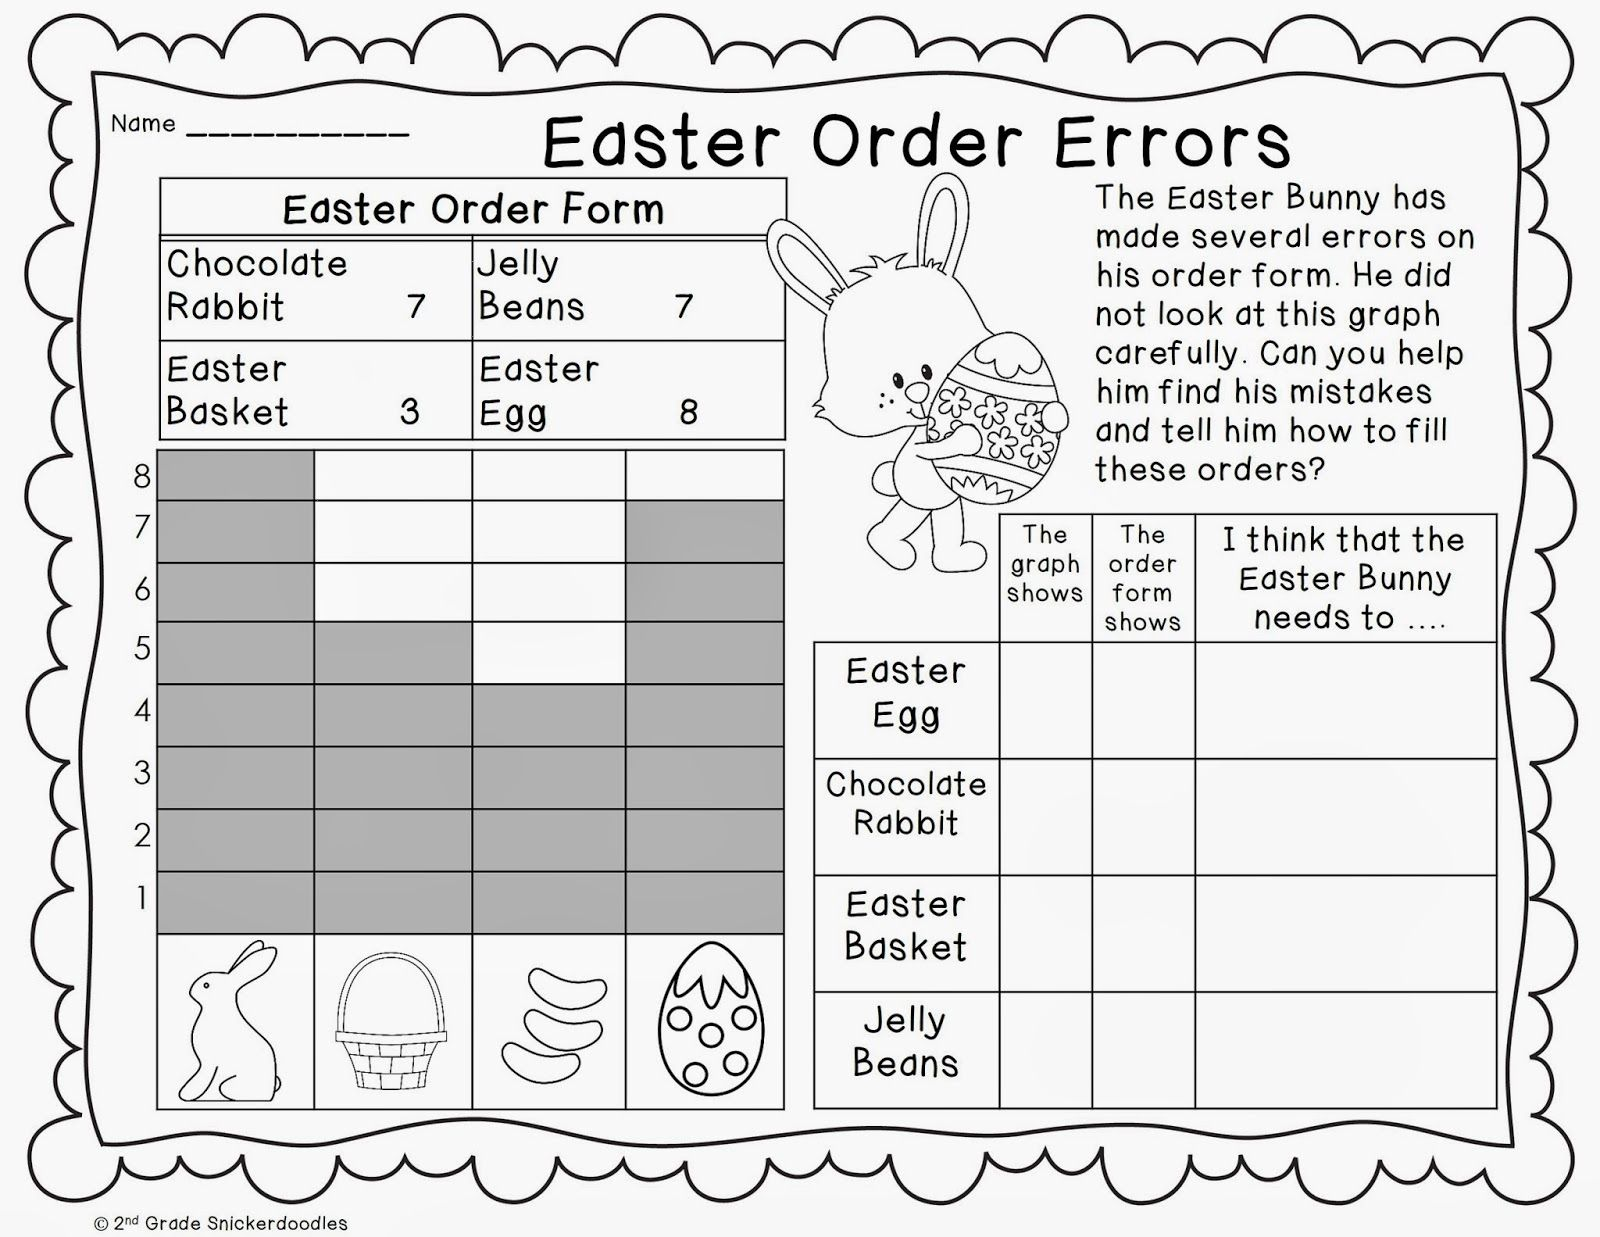 2nd Grade Snickerdoodles: Graphing Freebies   Spring math worksheets [ 1237 x 1600 Pixel ]